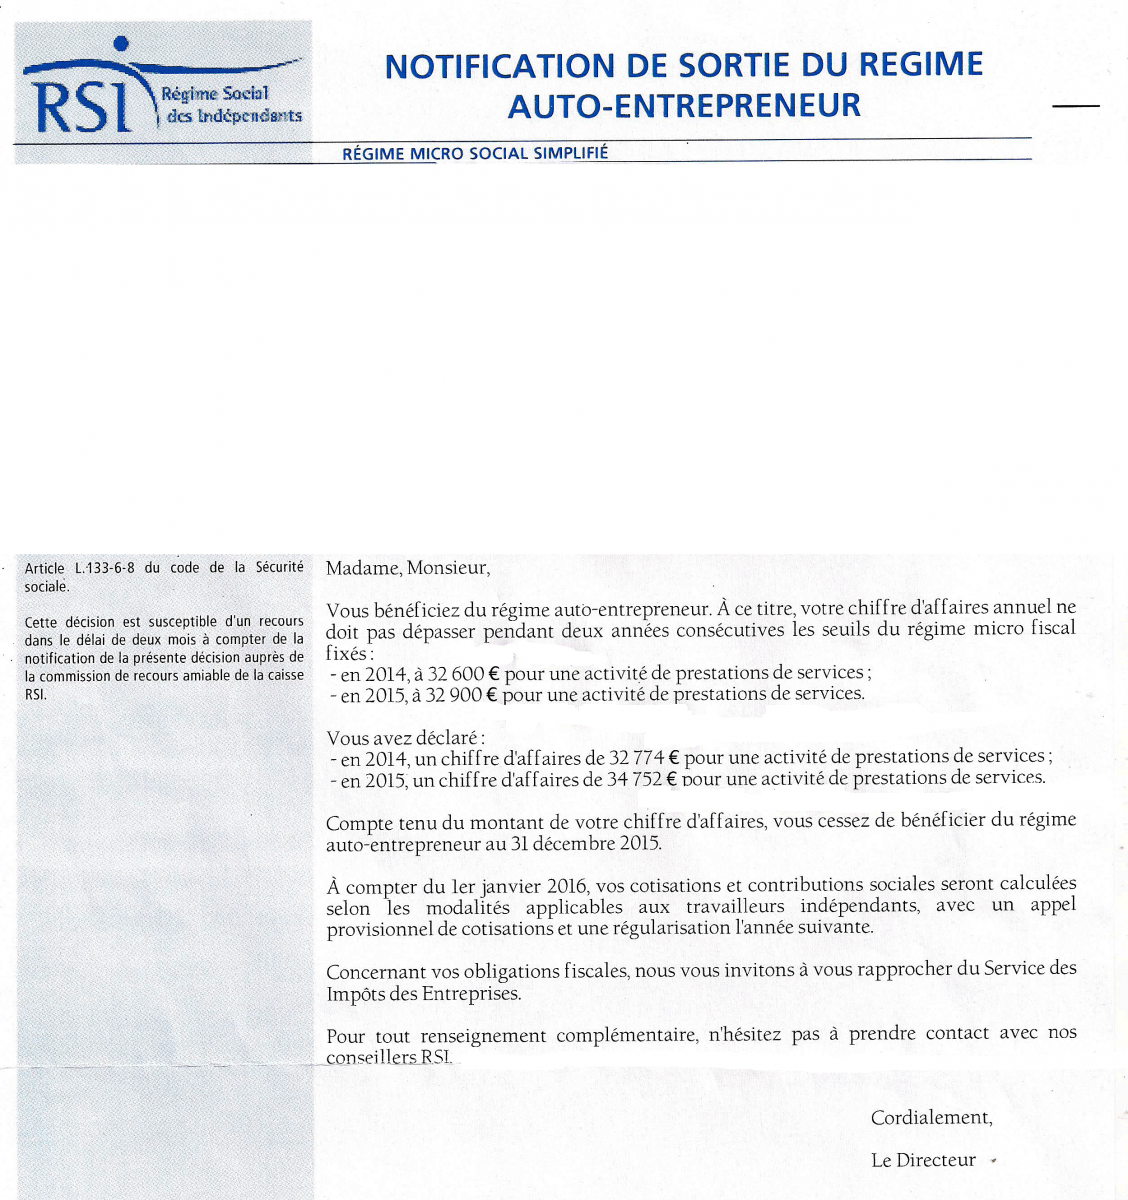 Courrier rsi de notification de changement de r gime for Auto entrepreneur idees qui marchent